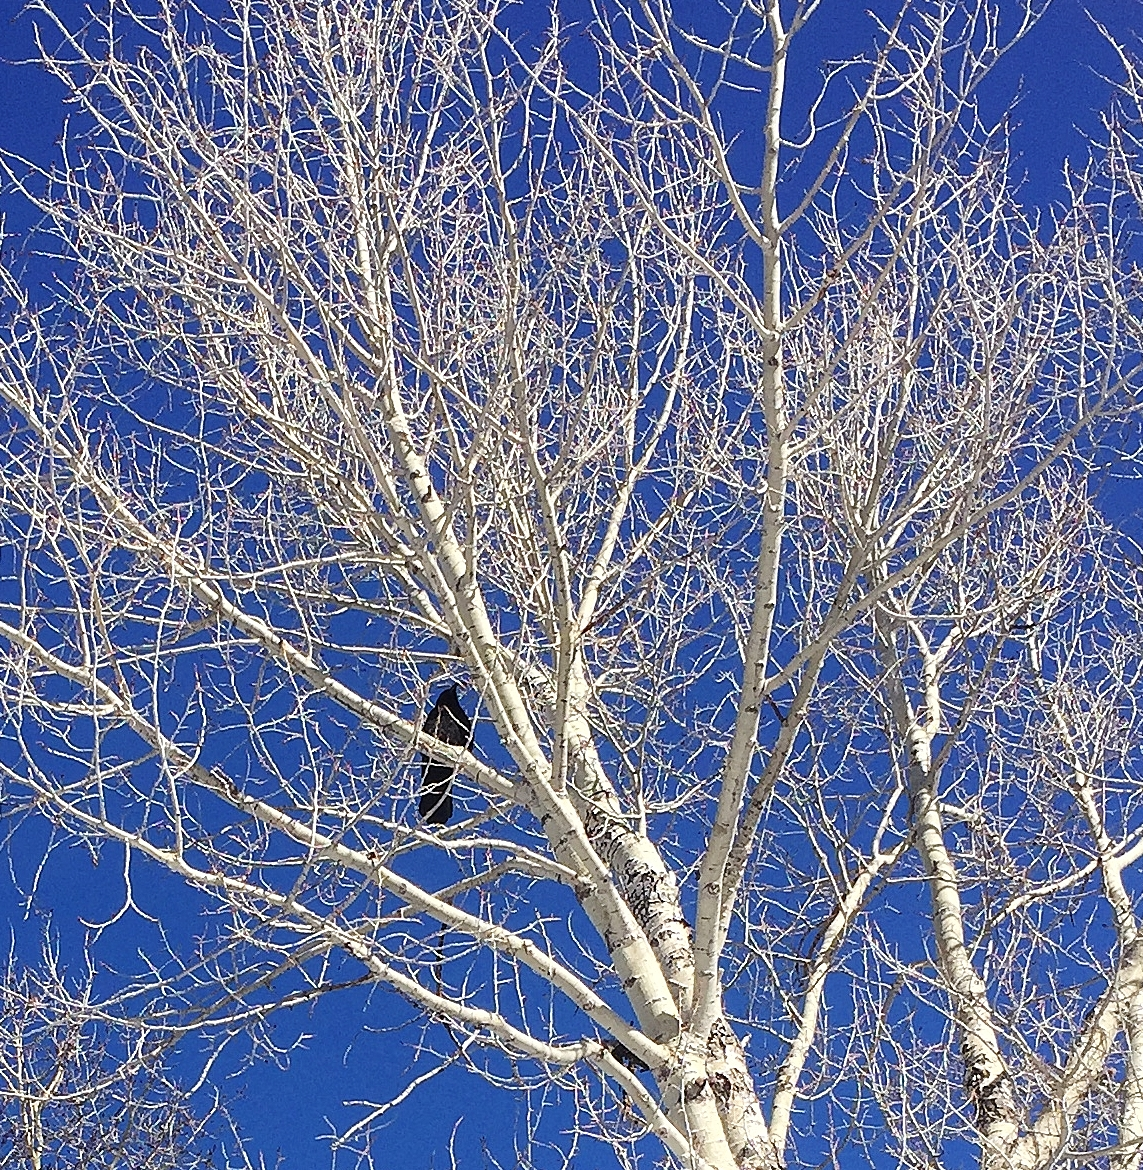 A raven watches us as we work.